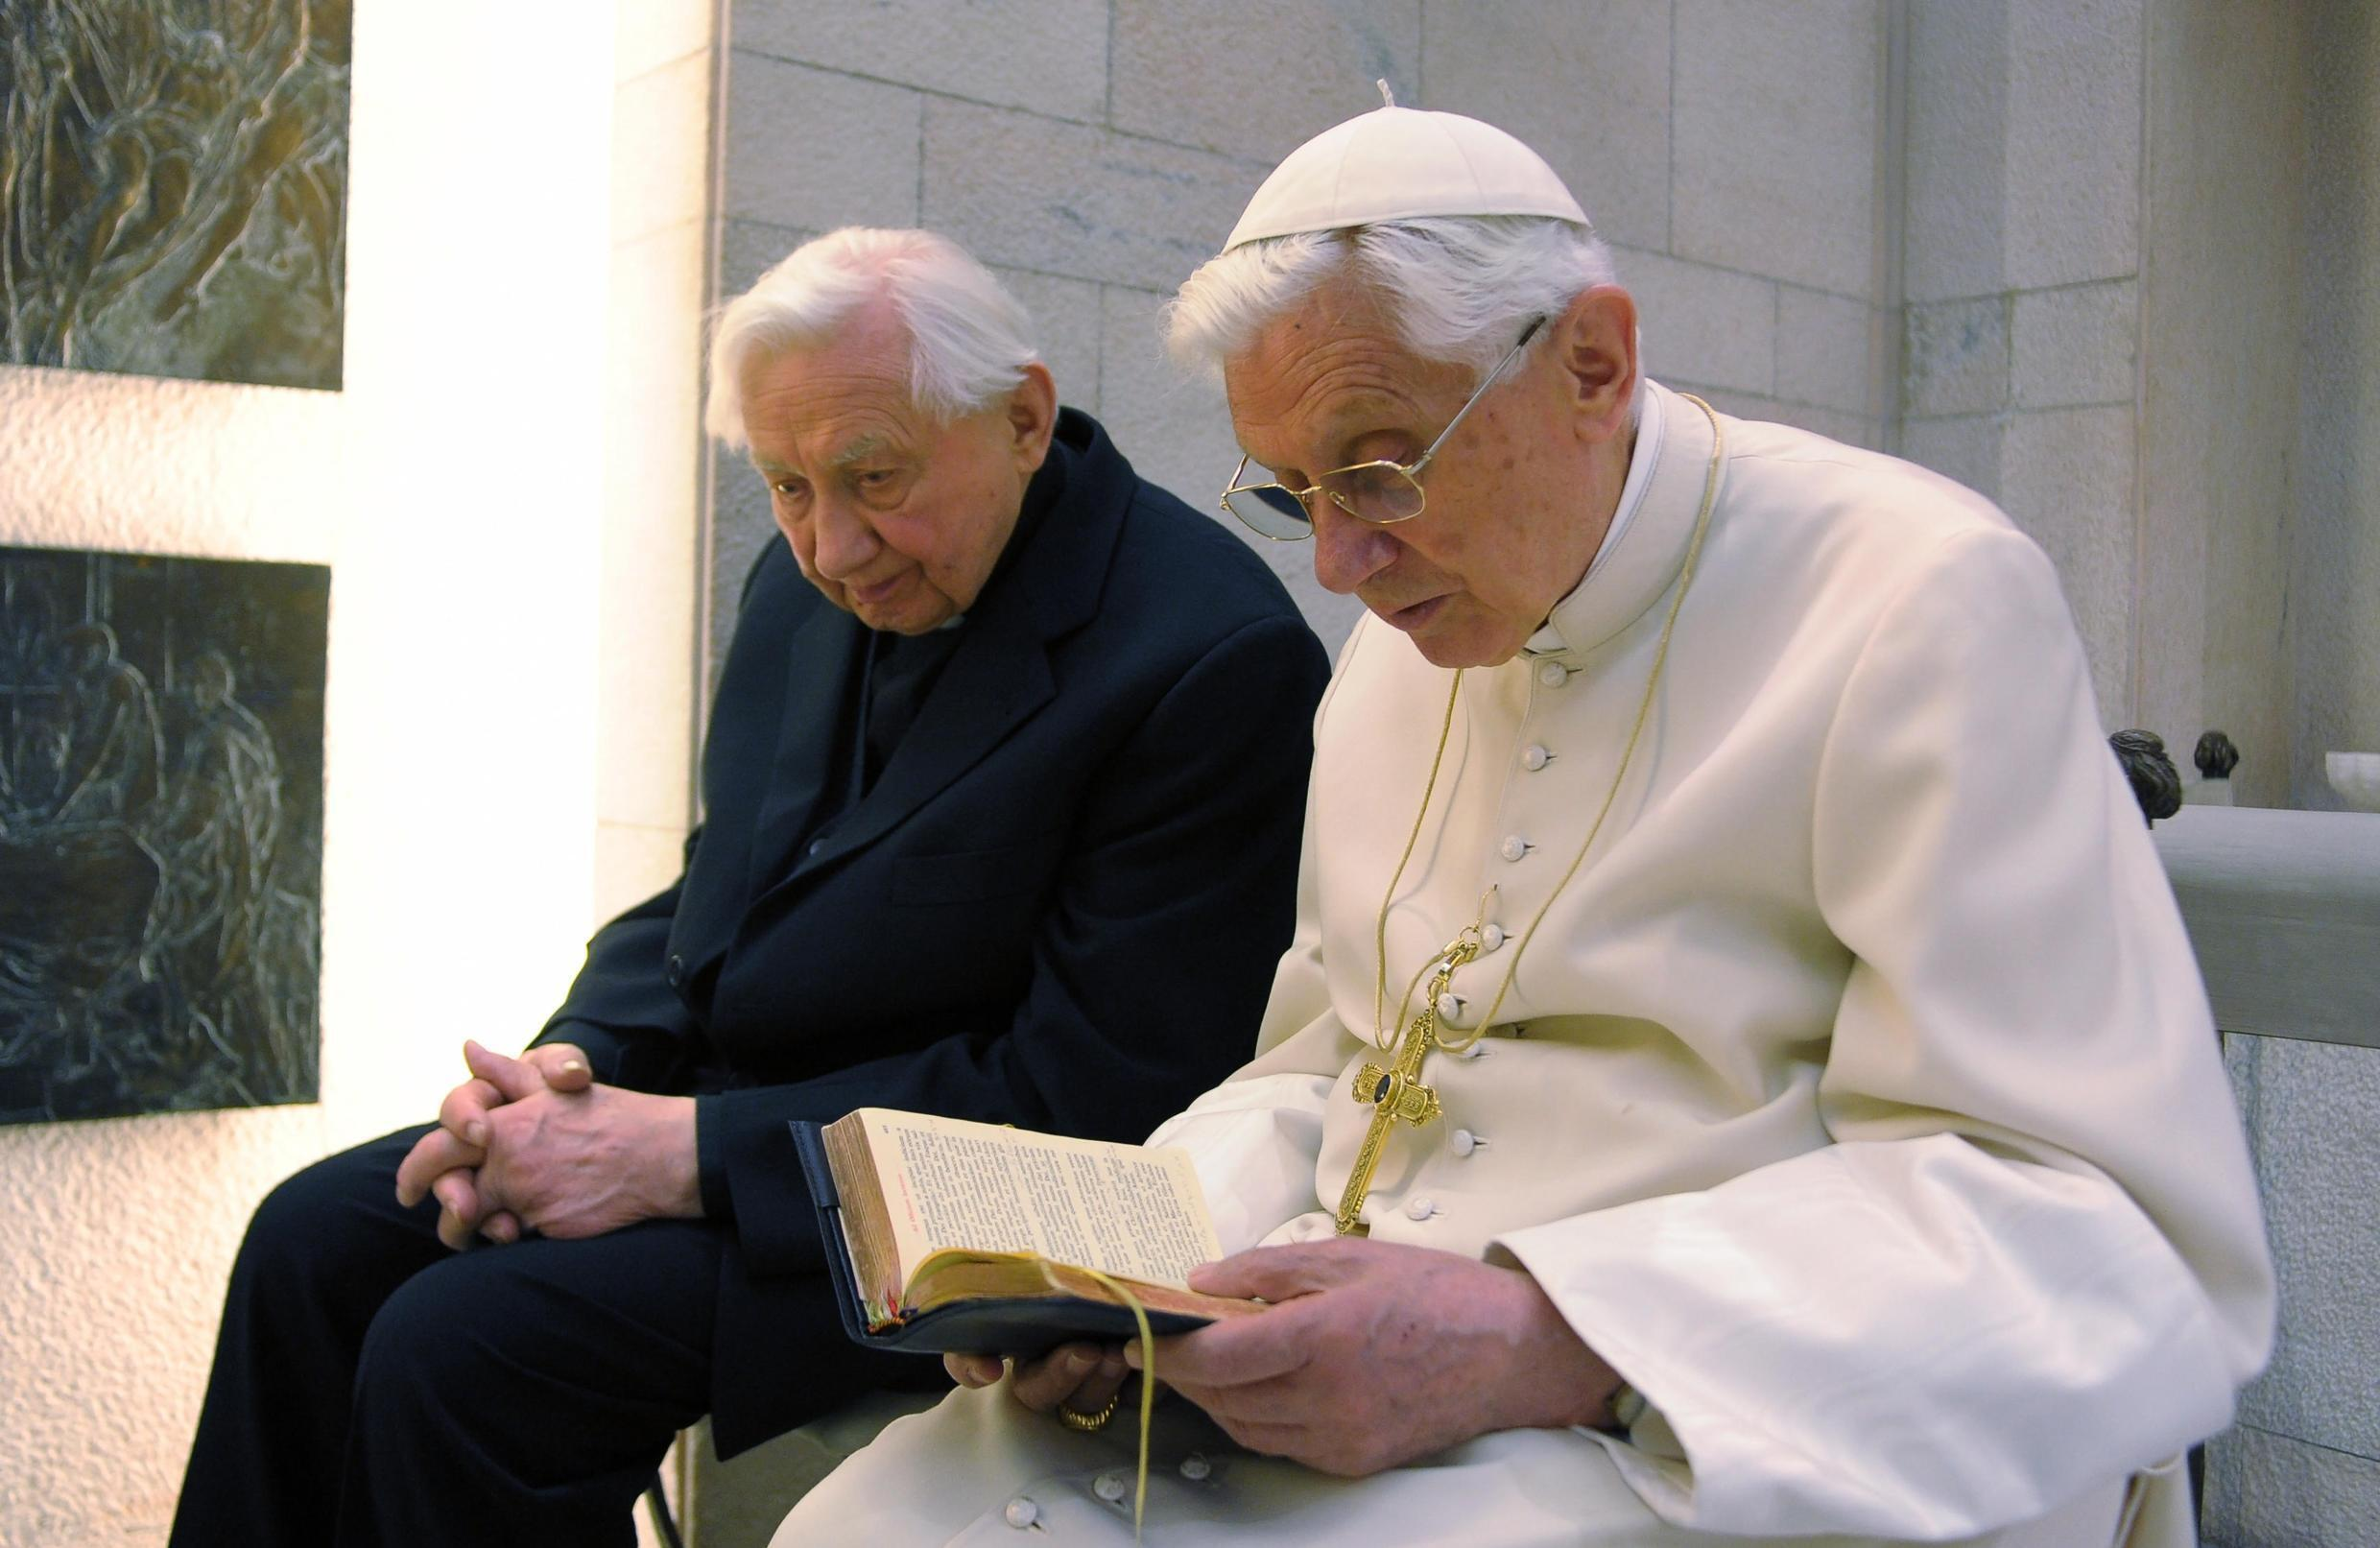 Former pope Benedict XVI, right, pictured with his brother Georg Ratzinger at the Vatican in 2012